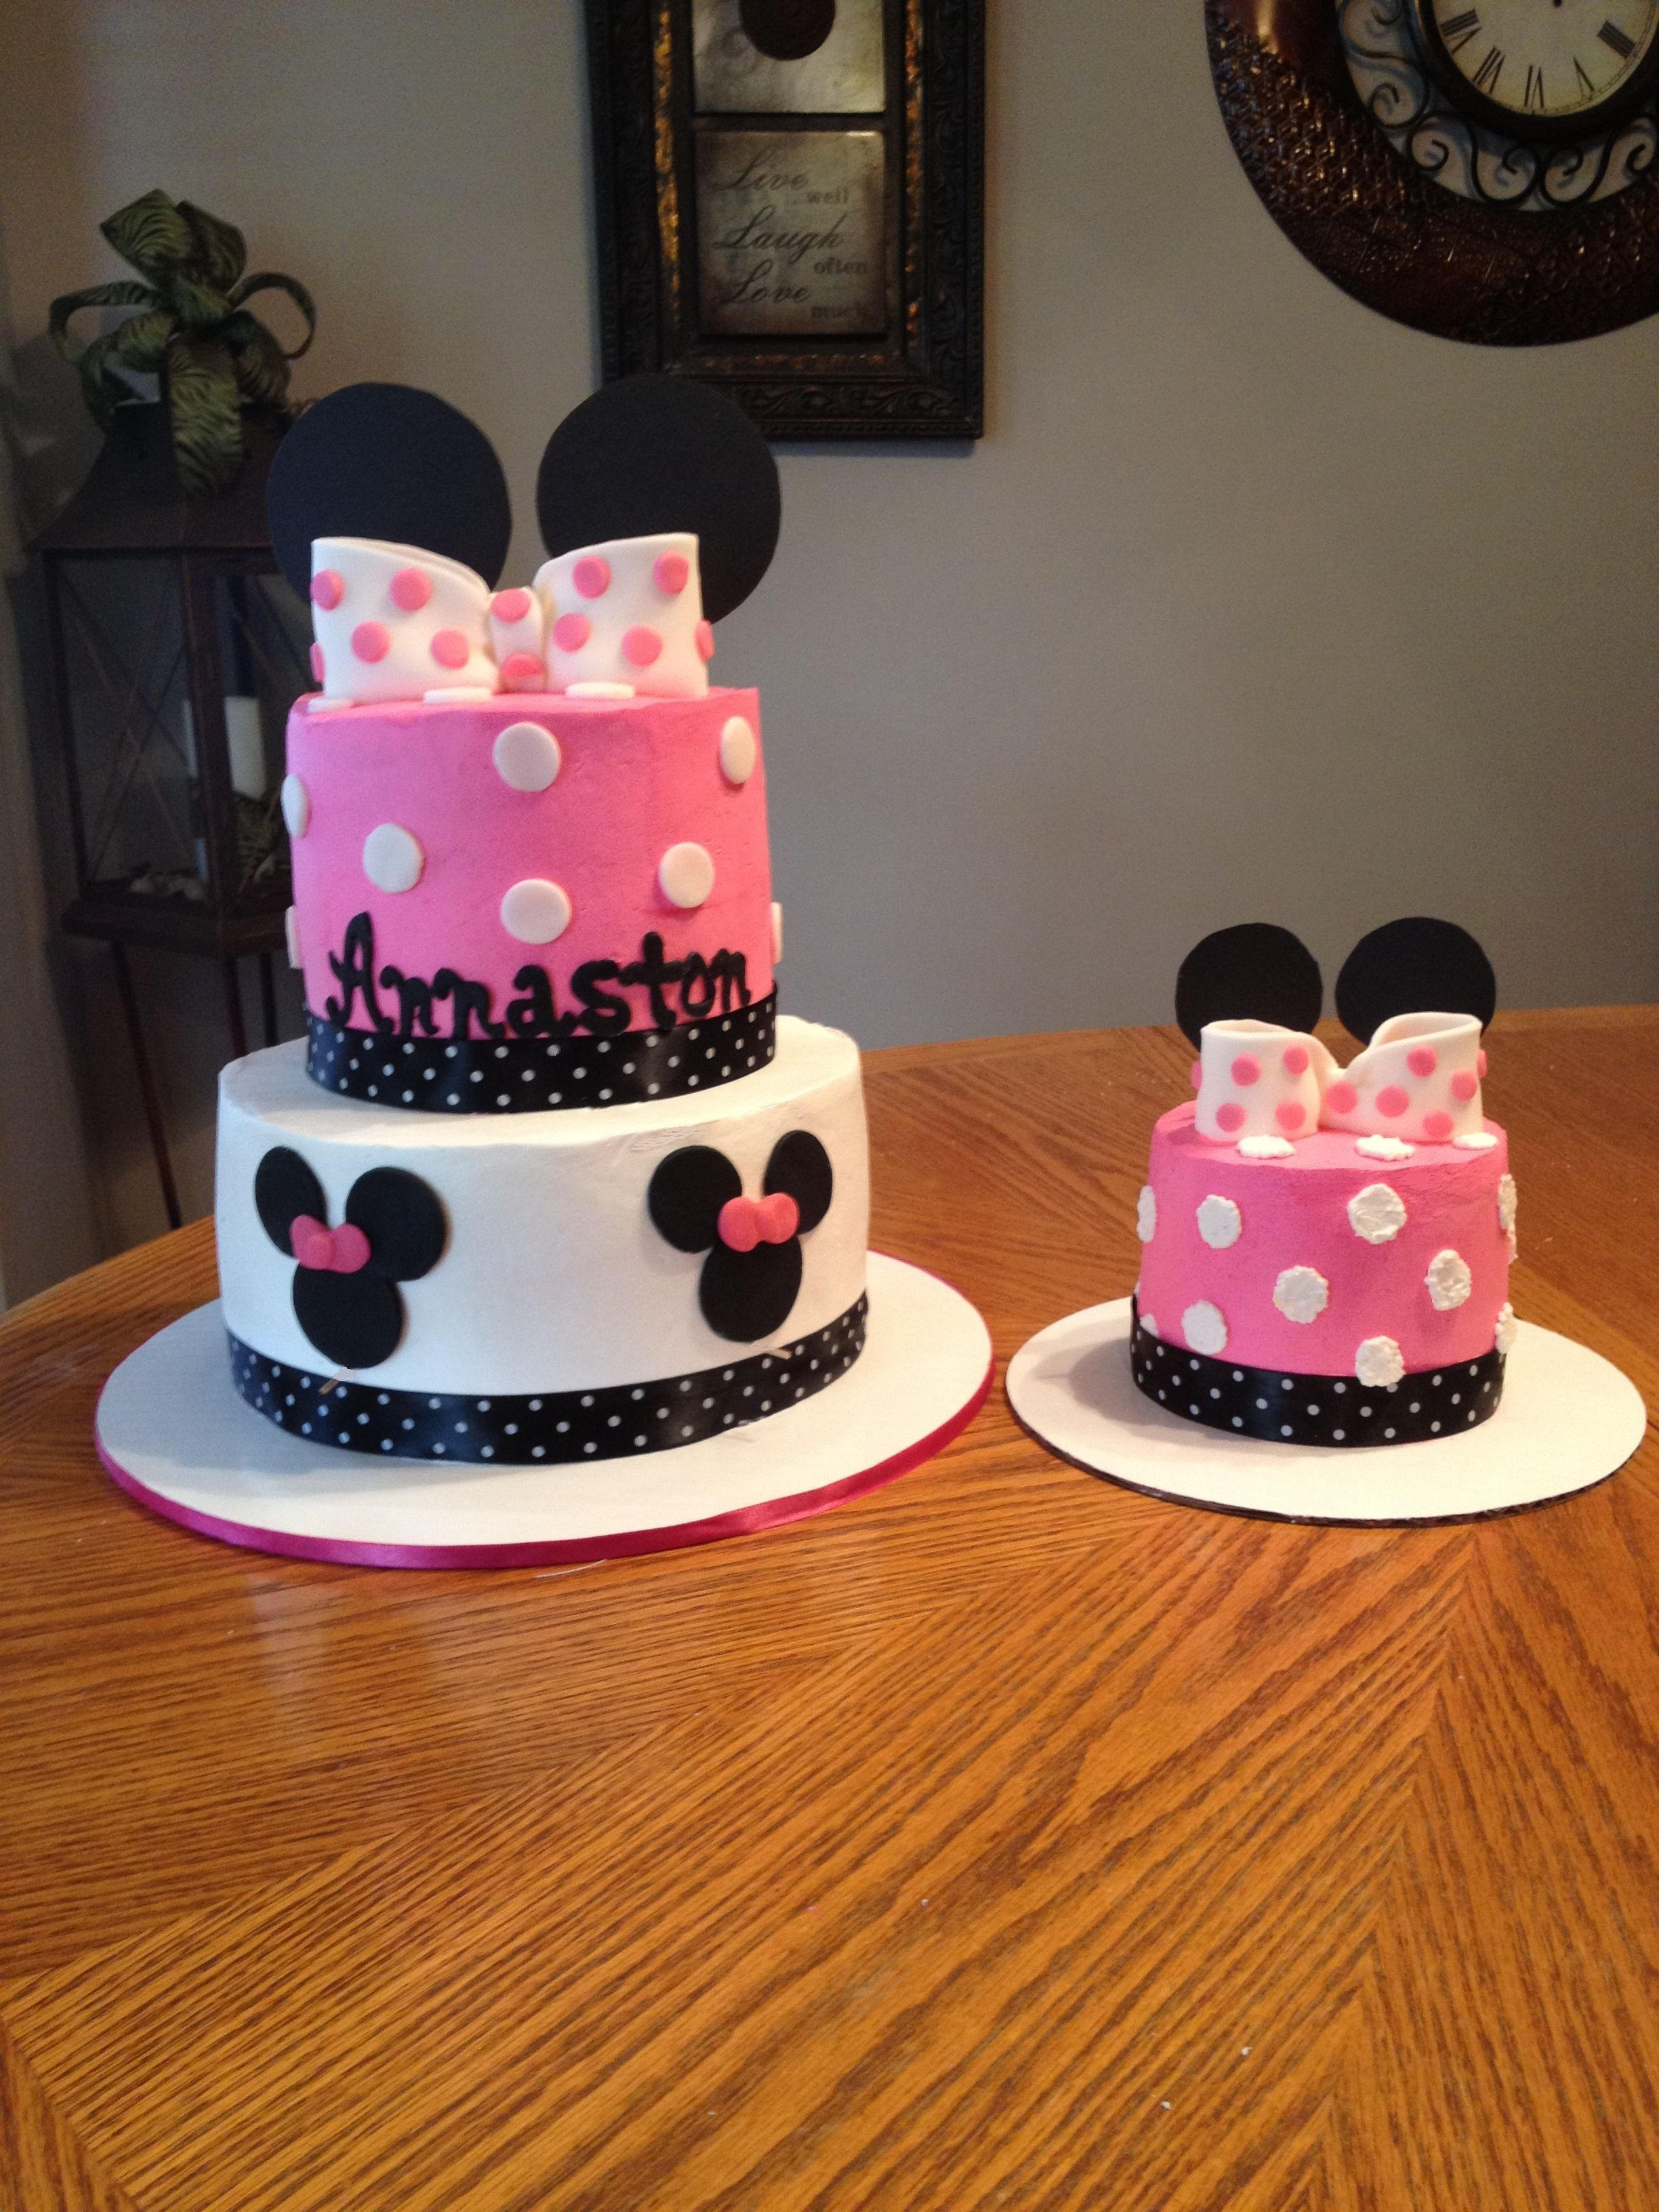 Excellent Minnie Mouse Heres Another Minnie Mouse First Birthday Cake W Birthday Cards Printable Riciscafe Filternl